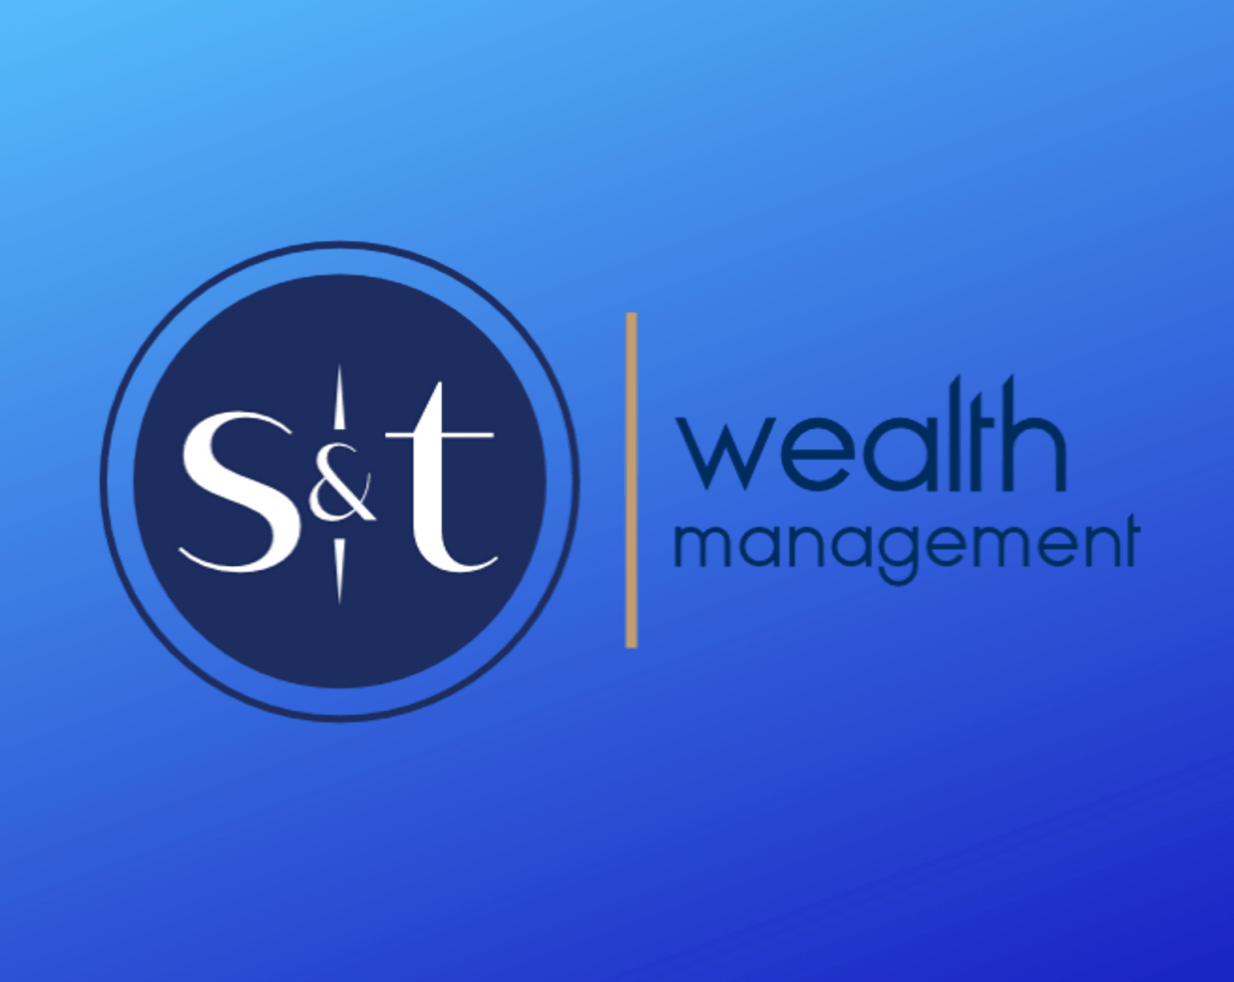 S&T Wealth Management